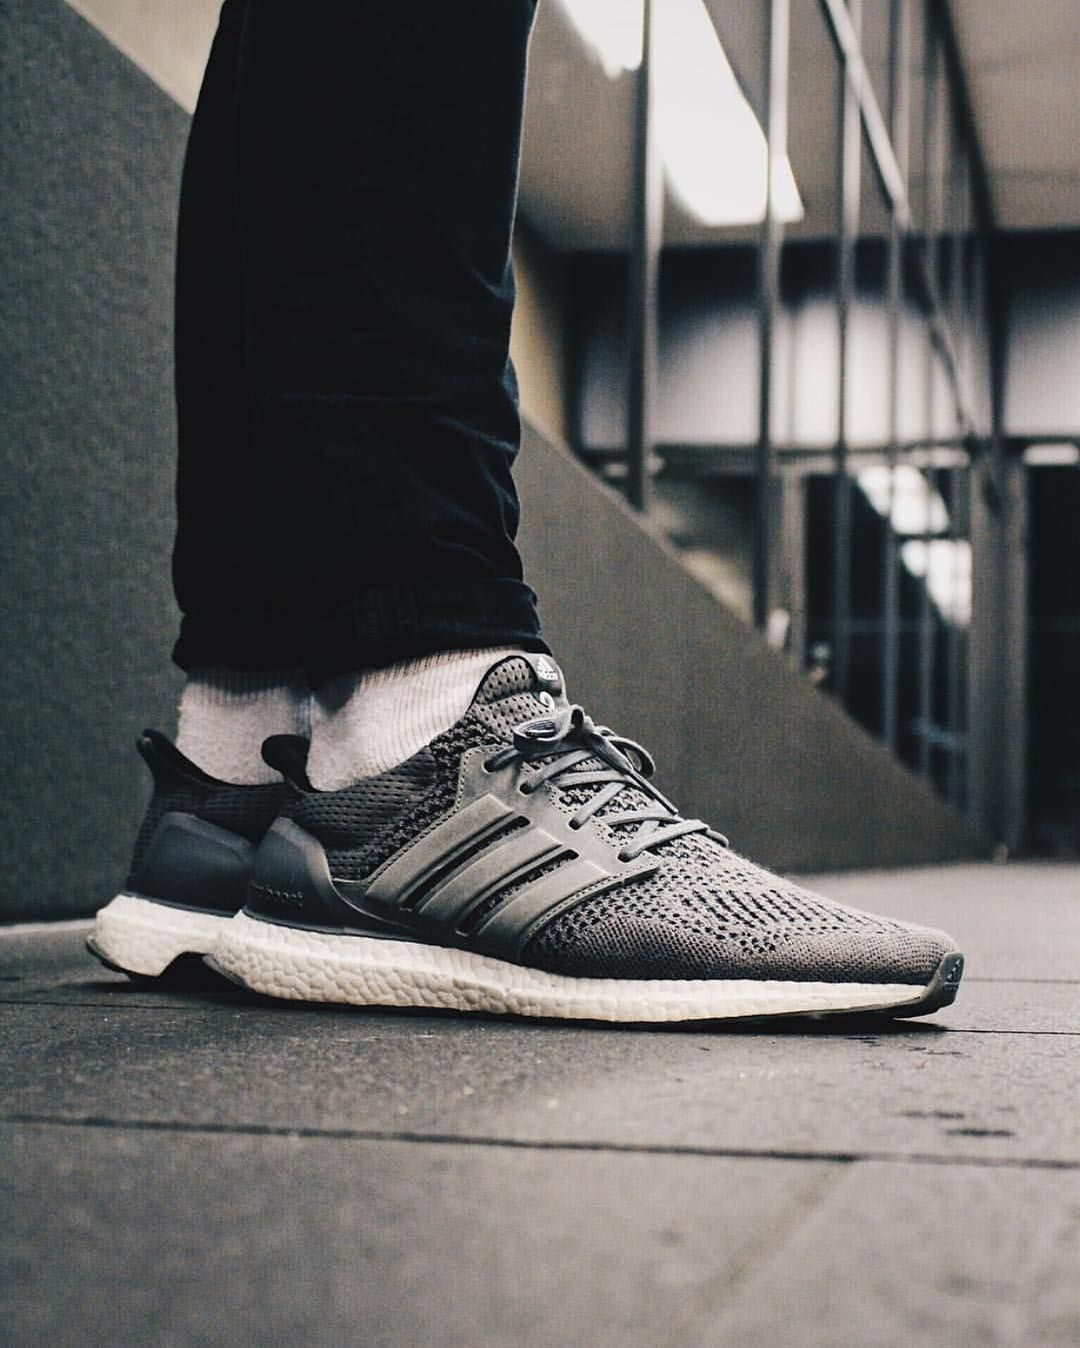 b4be71b0f7f9 adidas Ultra Boost kaufen – alle Releases im Blick mit Grailify.com ...